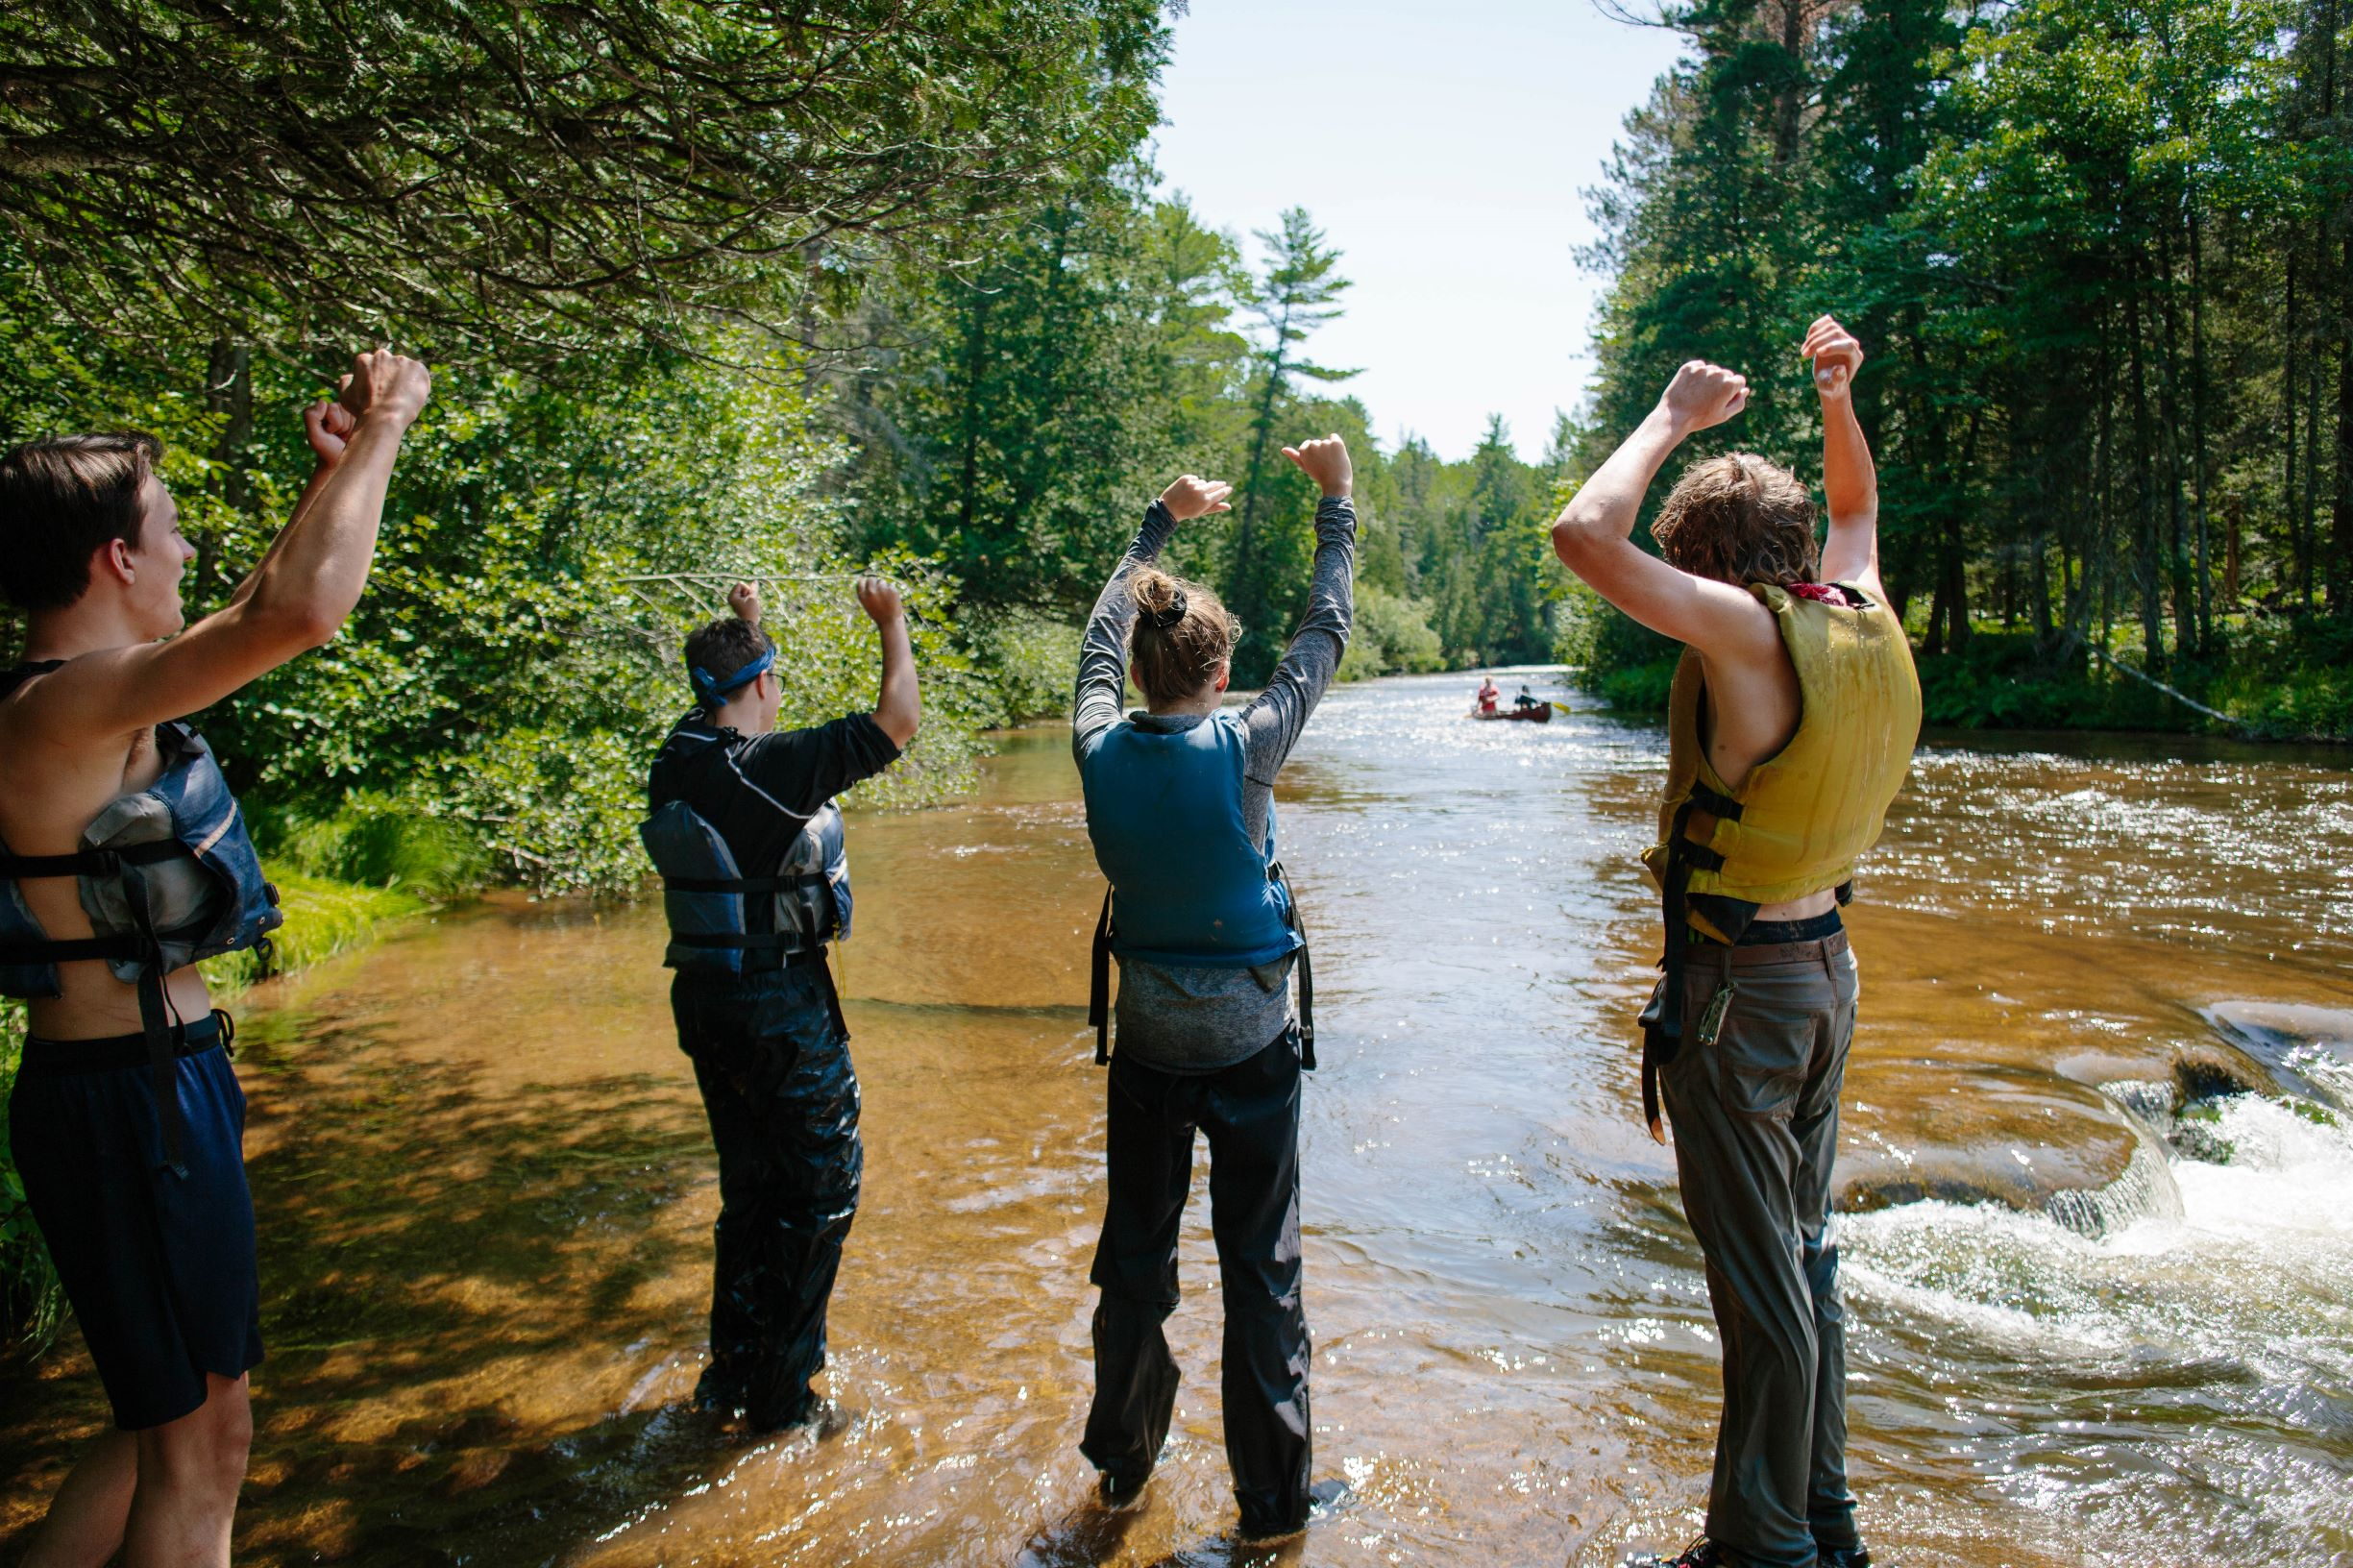 A team of women work together to pull a 35' Montreal Canoe onto shore in the Apostle Islands